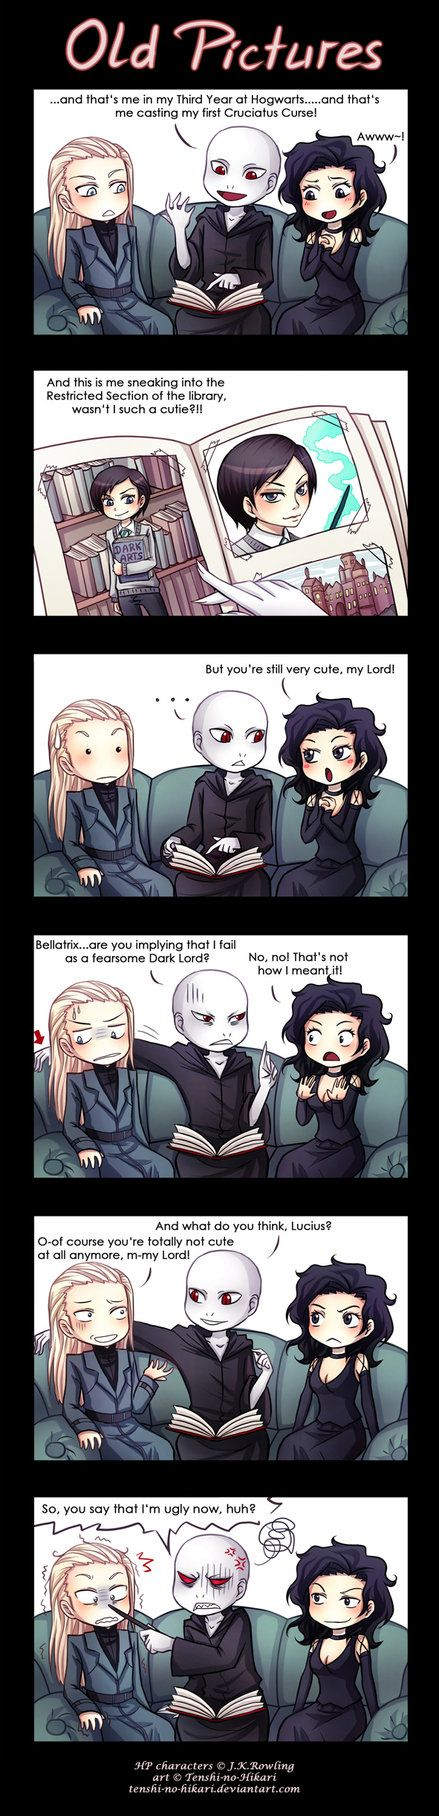 Voldemort, Lucius, and Bellatrix>> awwe if u dont ship them now, YOU SIT ON A THRONE OF LIES!!!